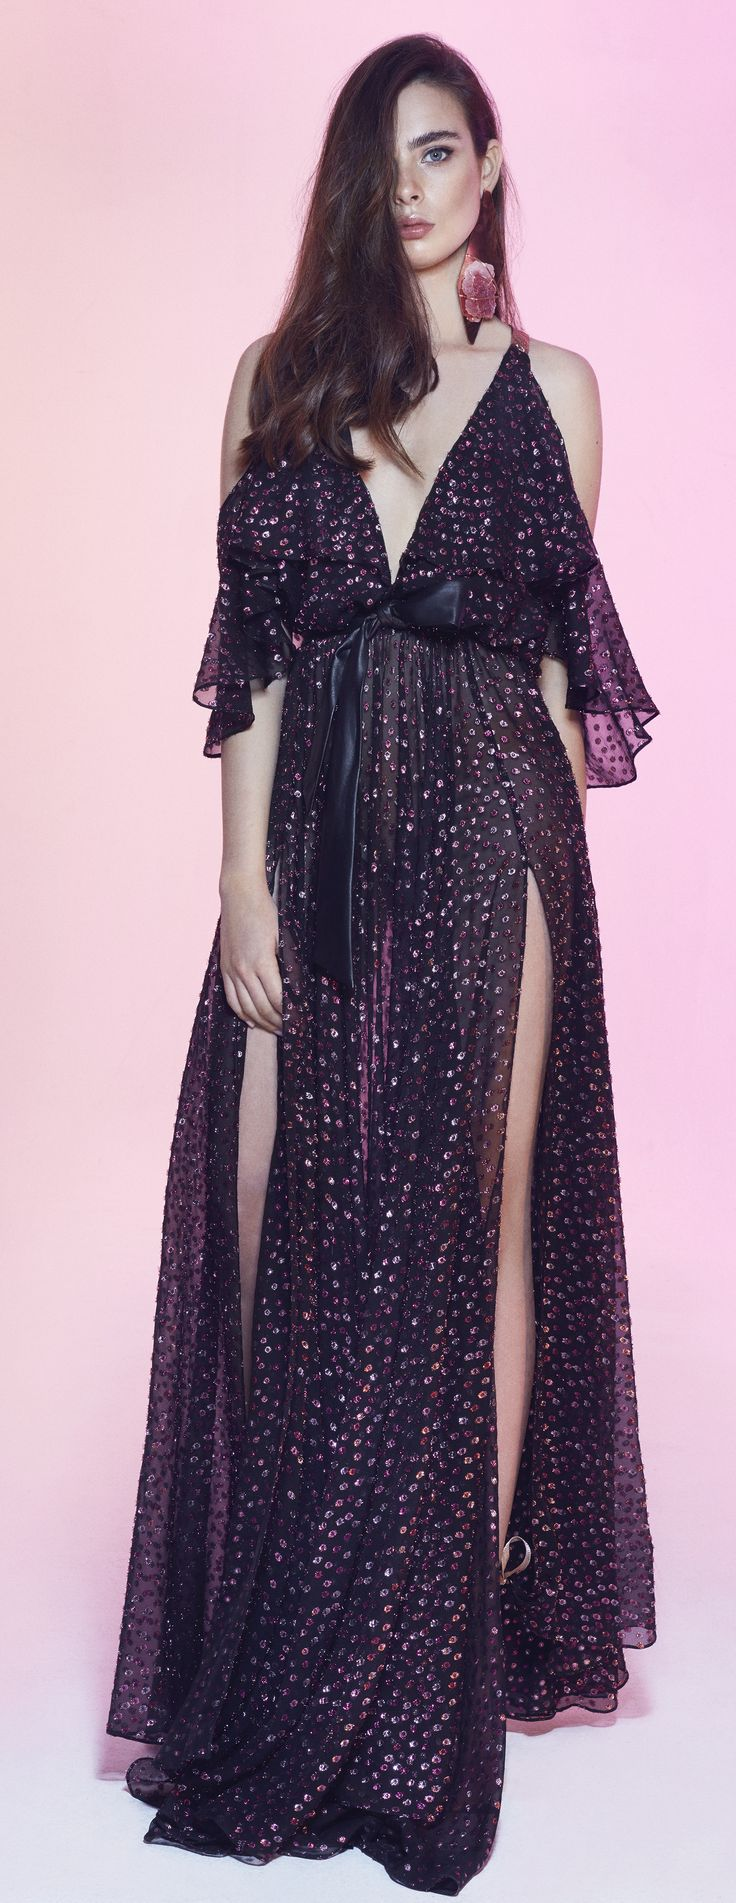 Nobo V: Pink polka dotted see-through black chiffon maxi dress. Deep plunging neckline halter top with off-the-shoulder details. Flowy loose gown with a black belt over the waist accentuating the figure. #RTW #dress